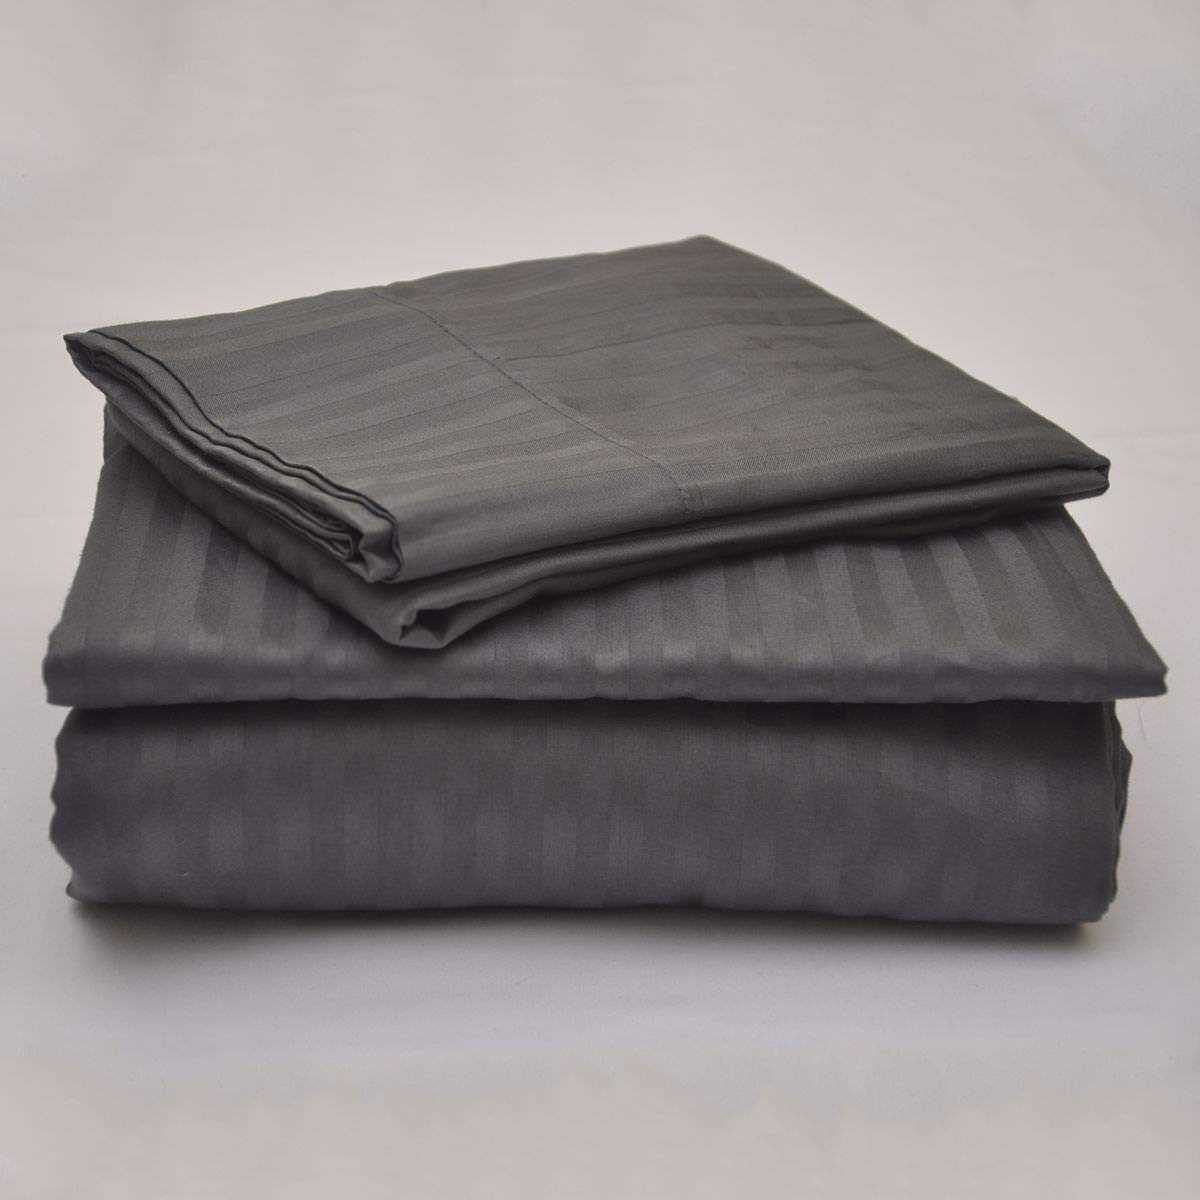 Cometa Bed Sheet Set 4 PCs - 400 Thread Count - 100% Pure Cotton Extra Soft - Breathable & Wrinkle Free - Fits Mattress Upto 22'' Deep Pocket - Full, Dark Grey Stripe